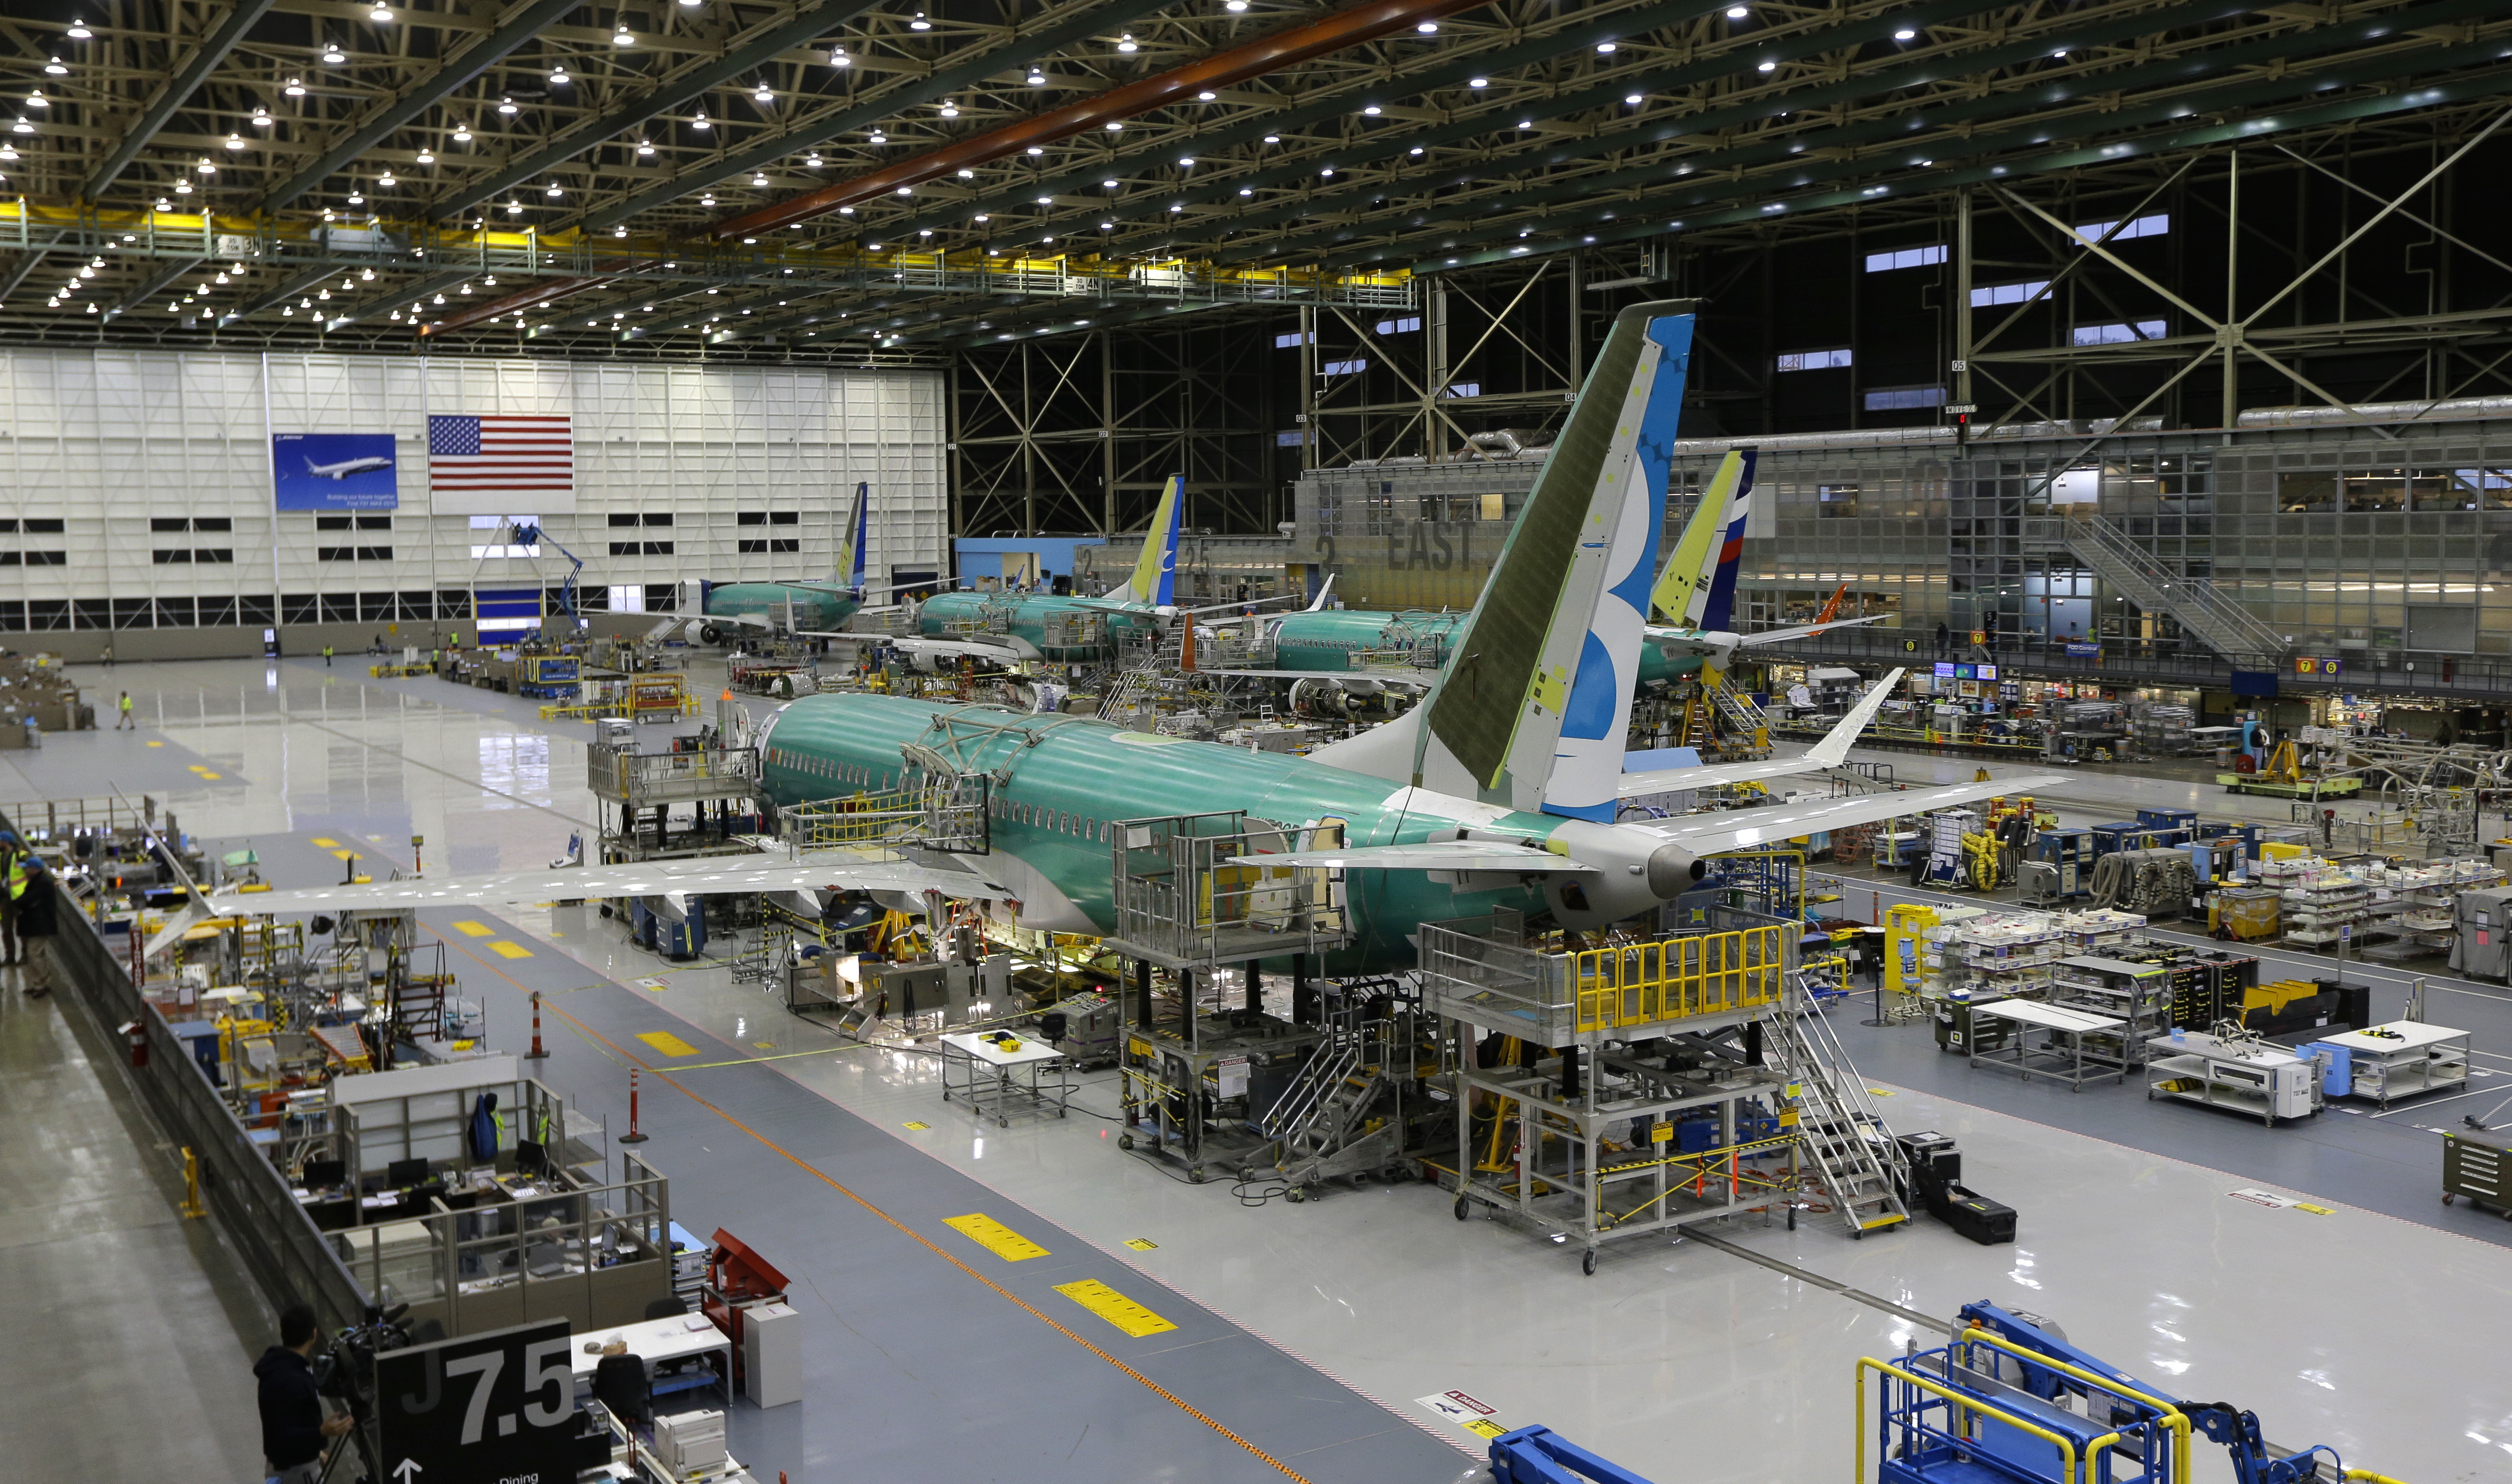 New software glitch found in Boeings troubled 737 Max jet